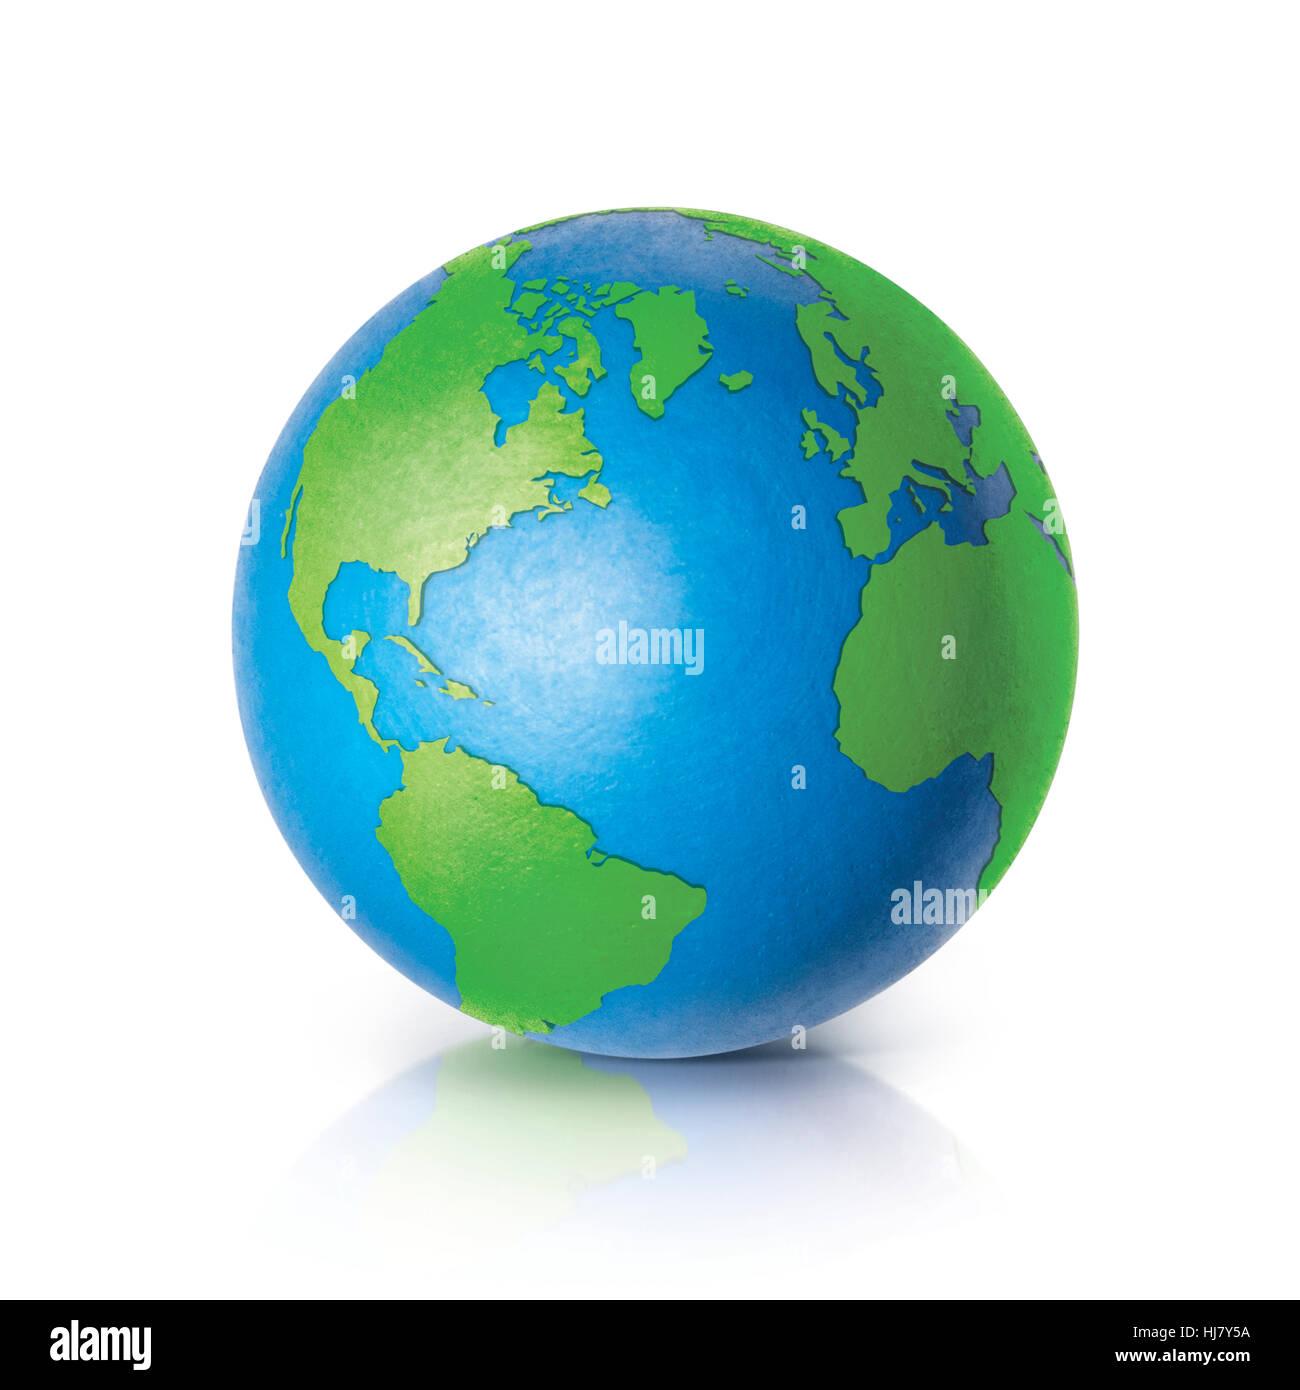 Saving earth cut out stock images pictures alamy color globe 3d illustration north and south america map on white background stock image nvjuhfo Choice Image